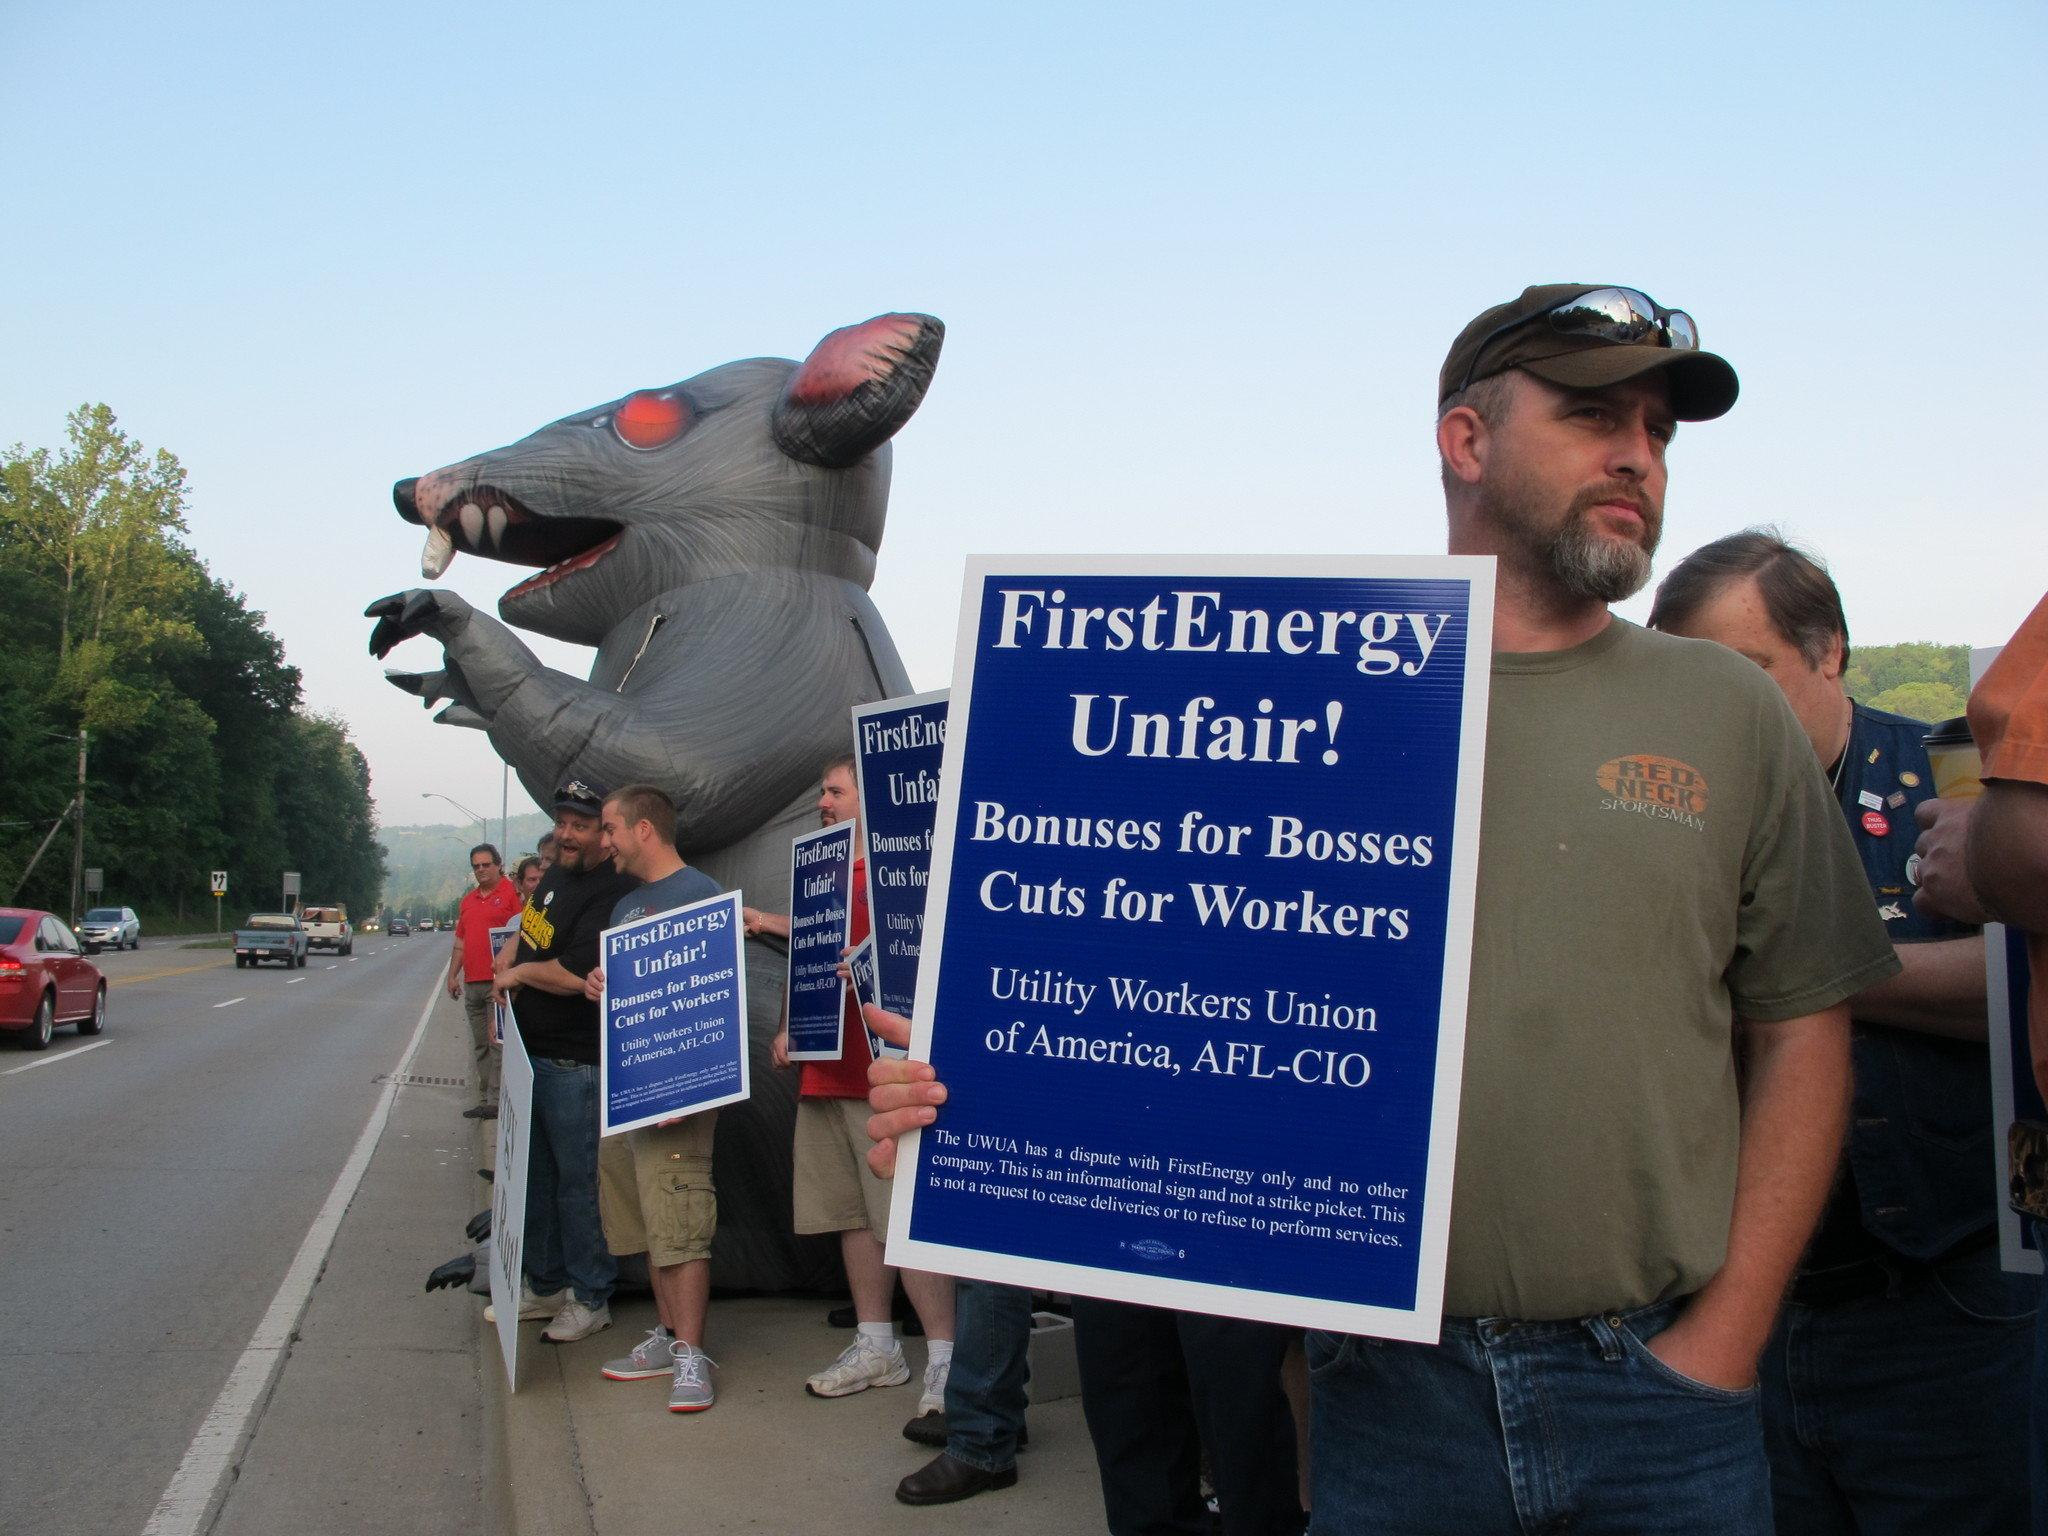 Solidarity Protest Brings Unions, Enviros, and Consumers Out Against Utility Company